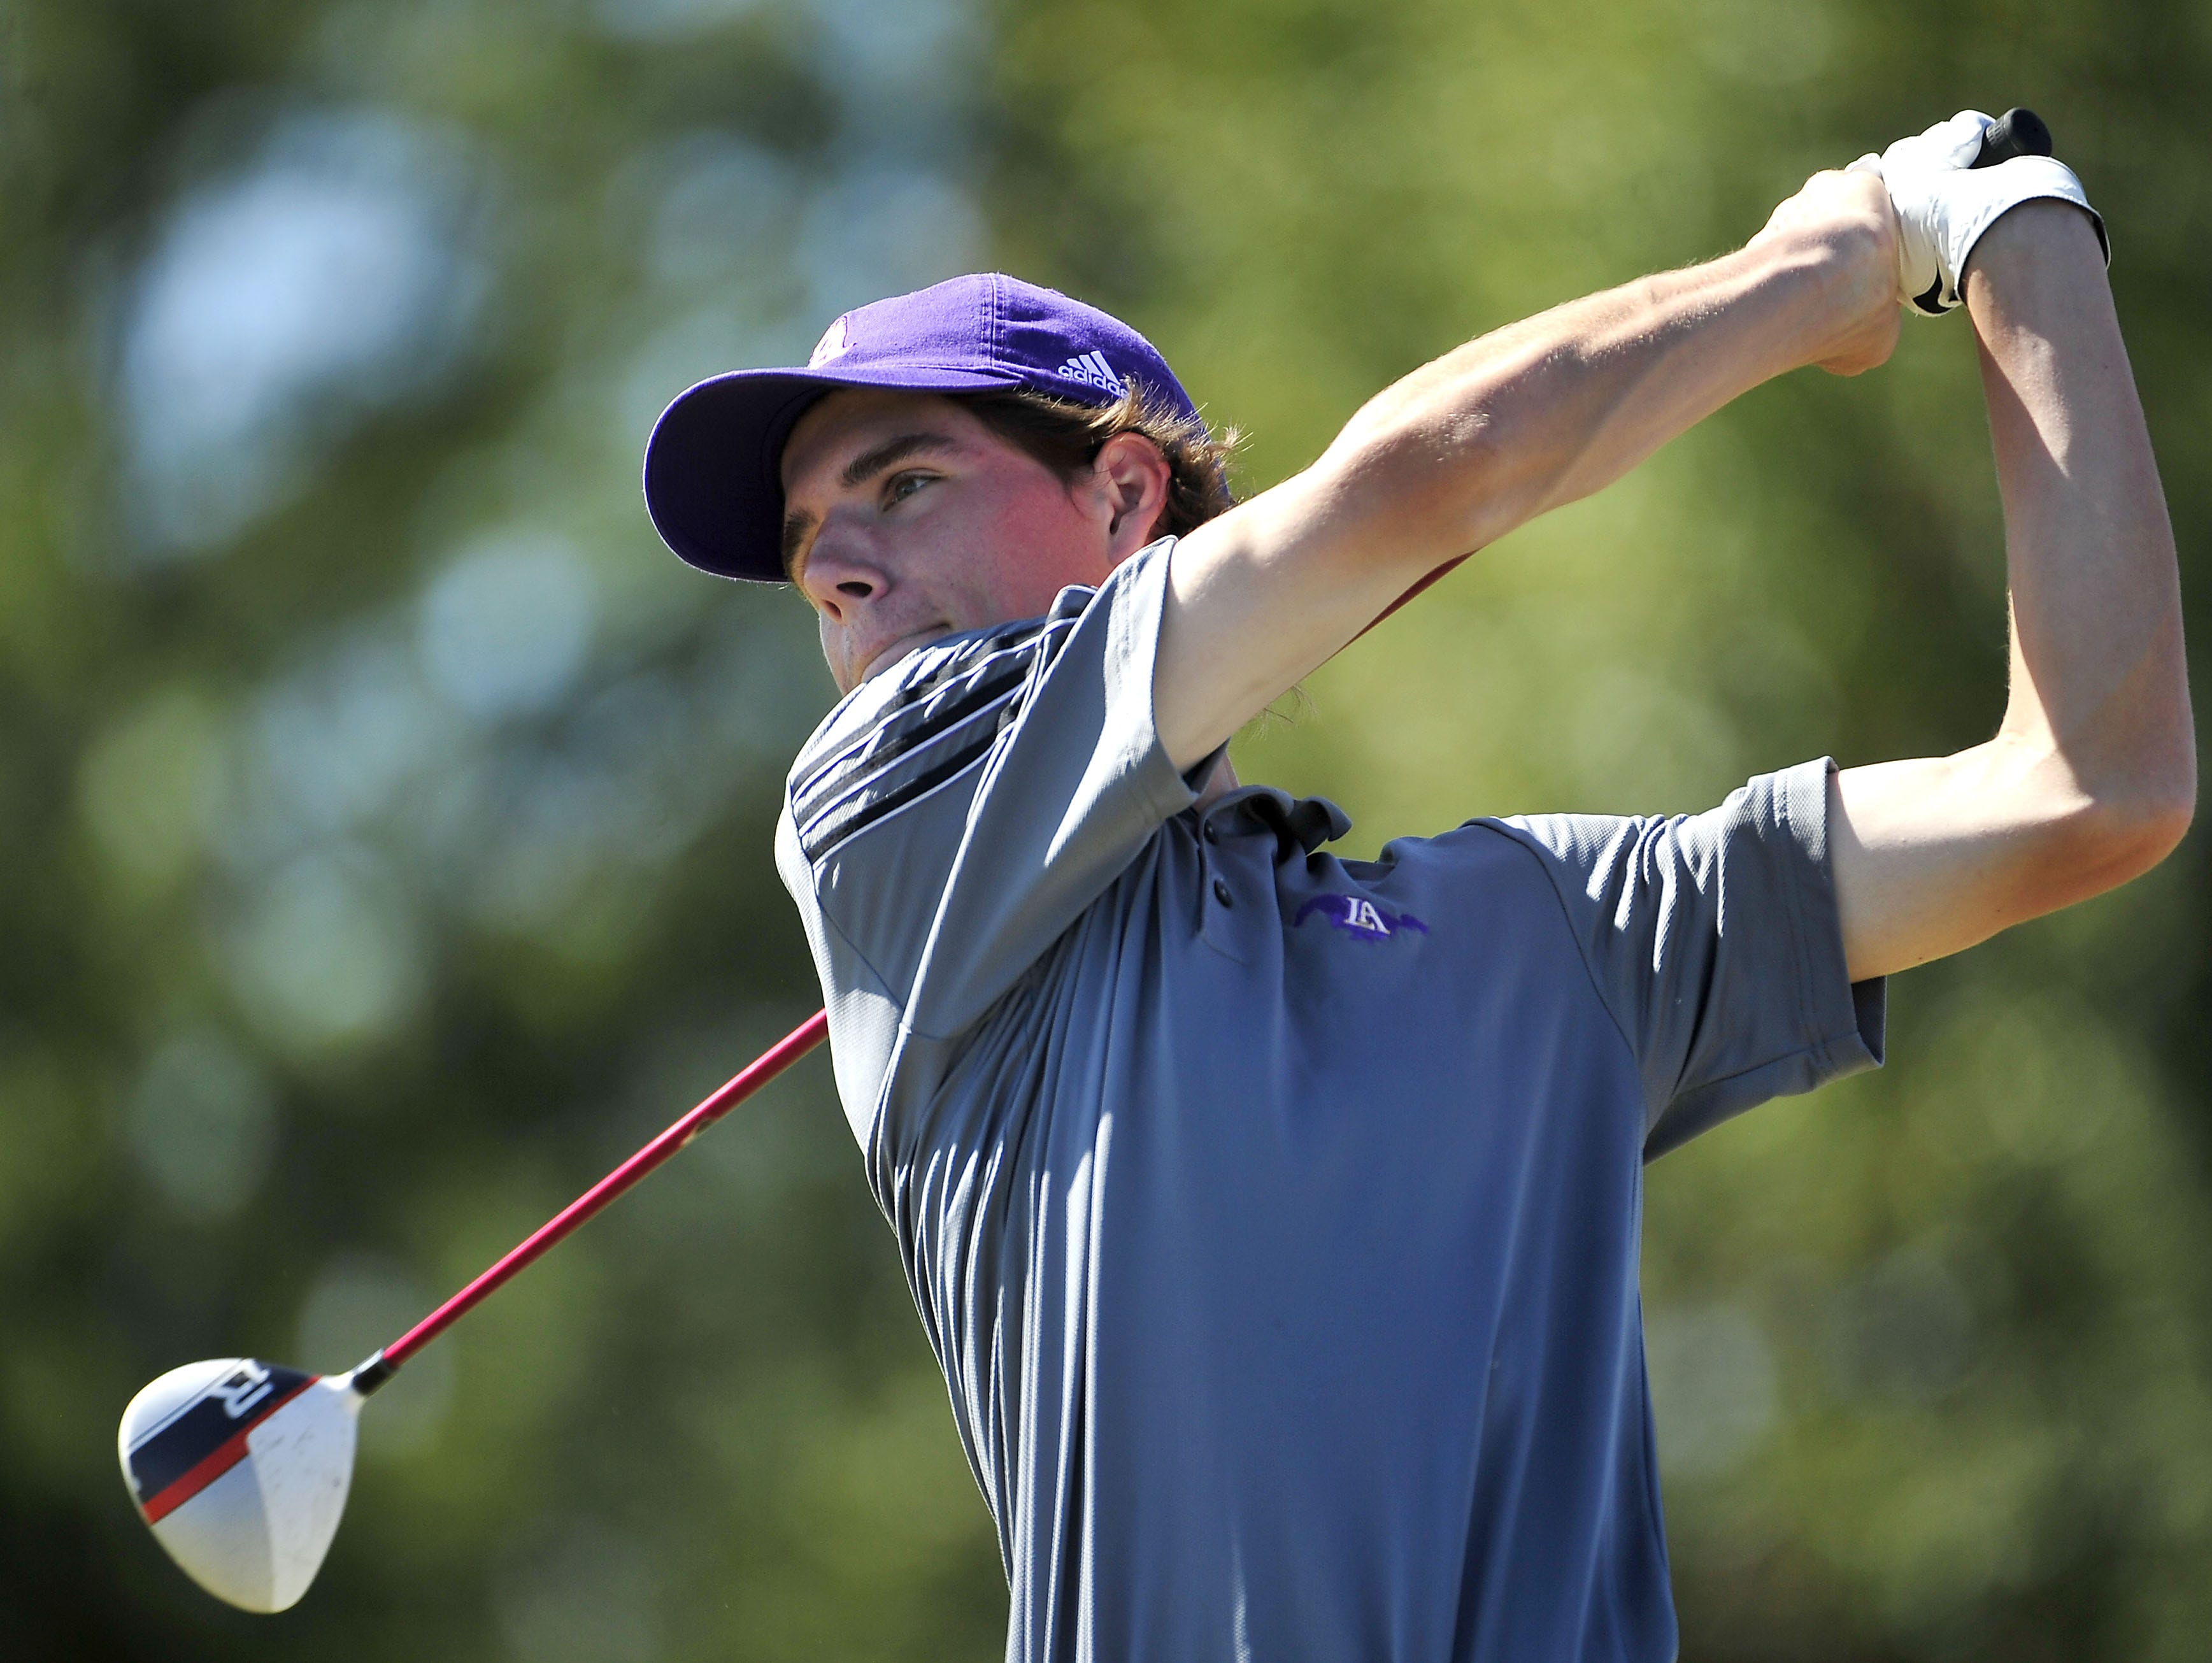 Lipscomb Academy's Paul Swindell placed fourth in Class A-AA last fall, and he also helped the Mustangs place fourth in the state as a team.